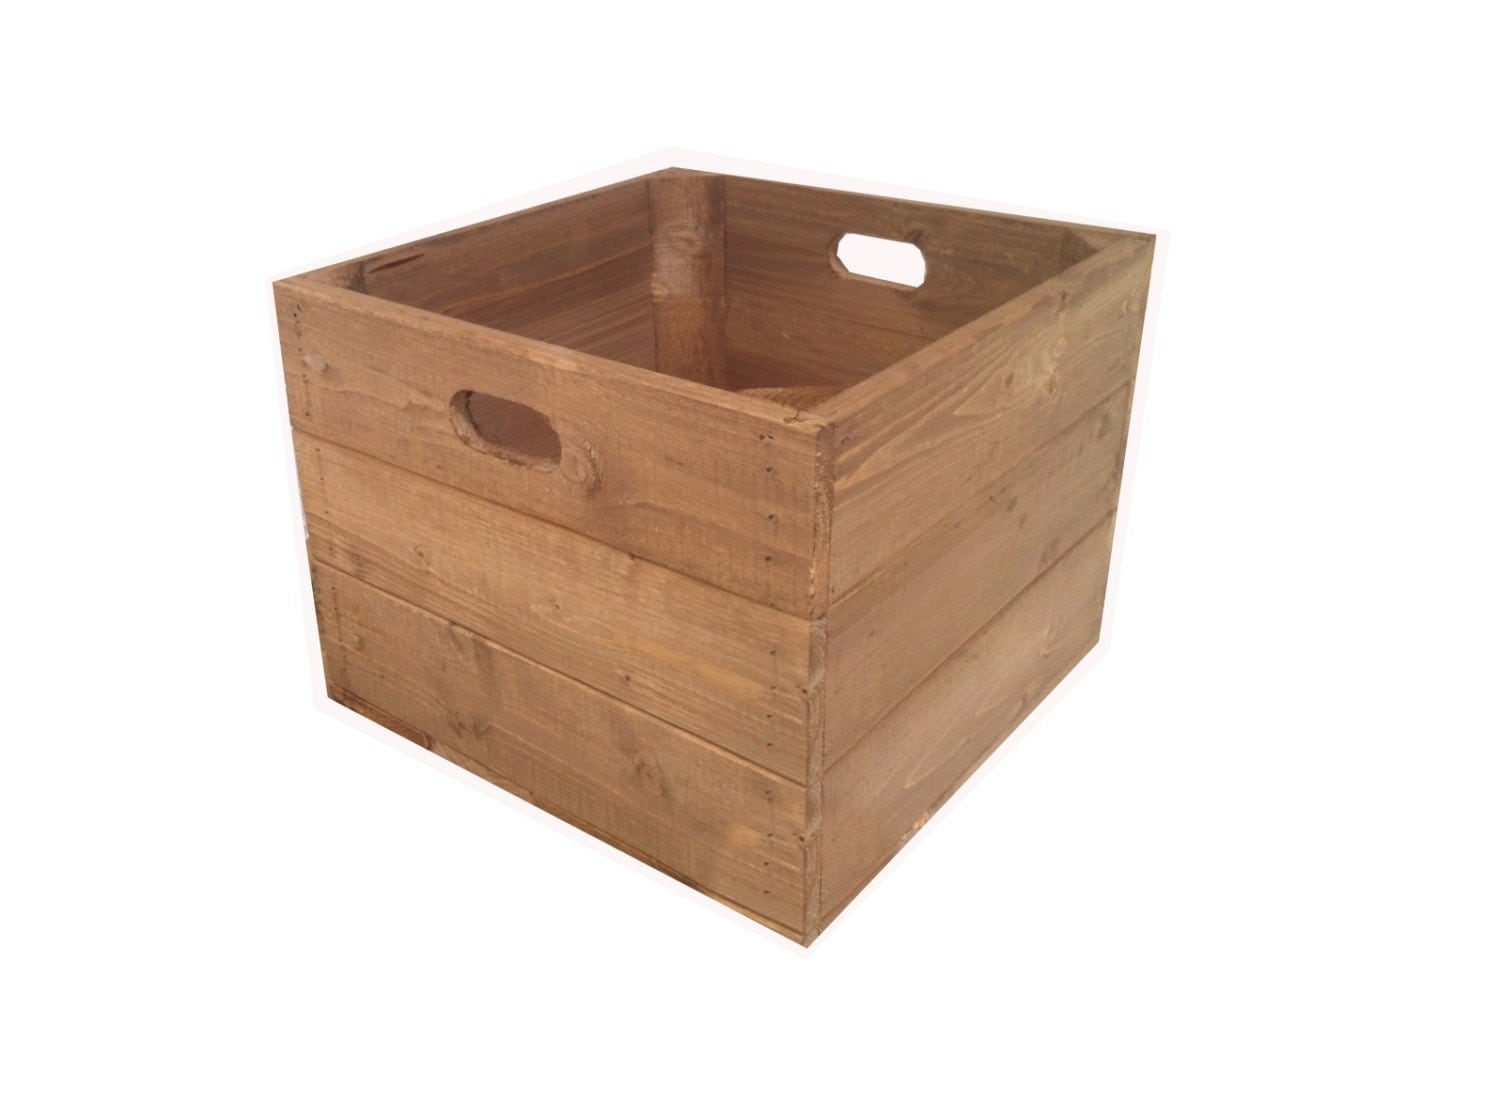 Rustic square wooden apple crate box for Used apple crates